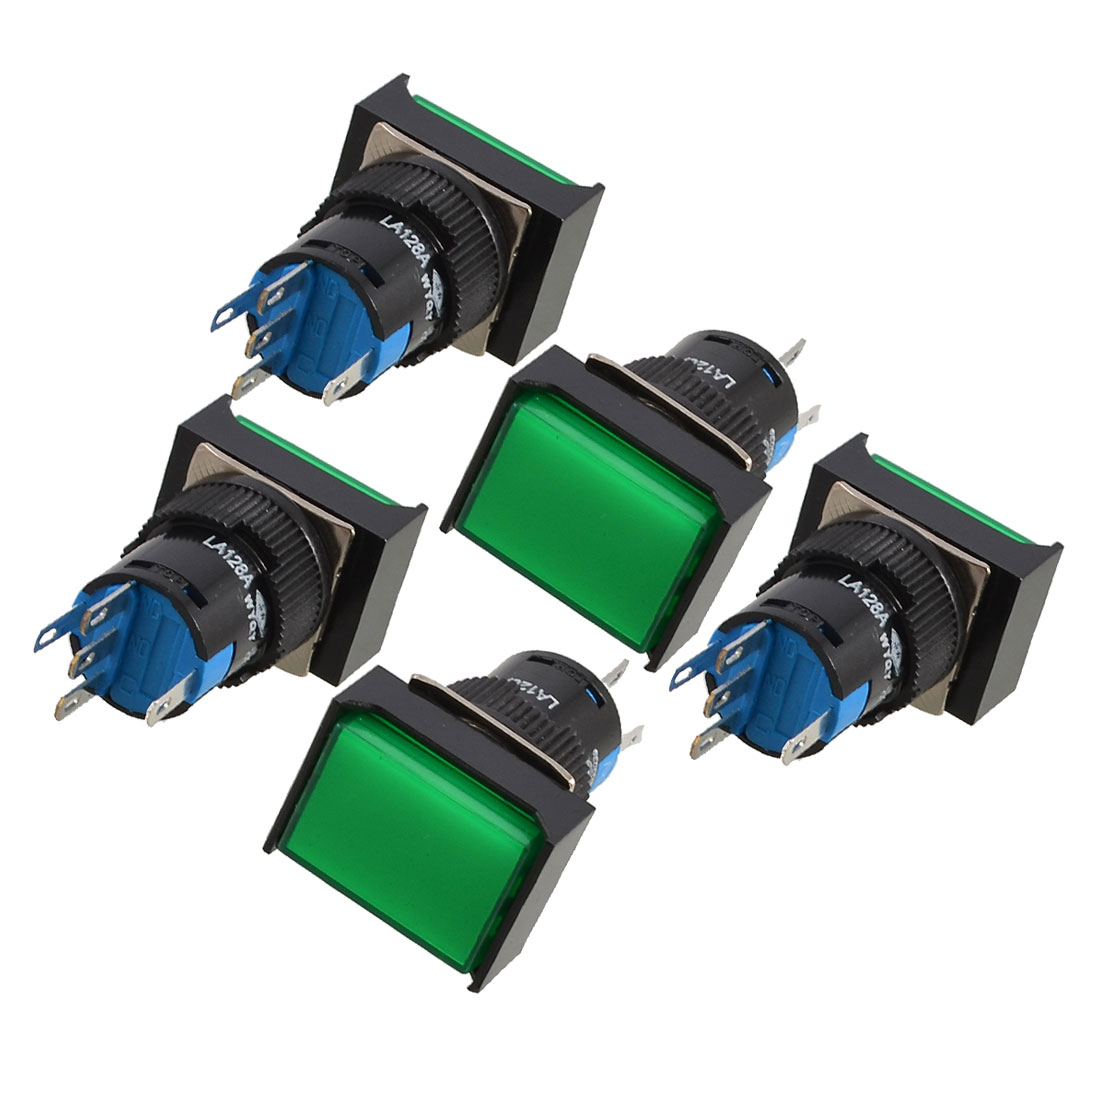 AC-110V-5A-1P2T-5-Terminals-Green-Cap-Momentary-Push-Button-Switch-5pcs